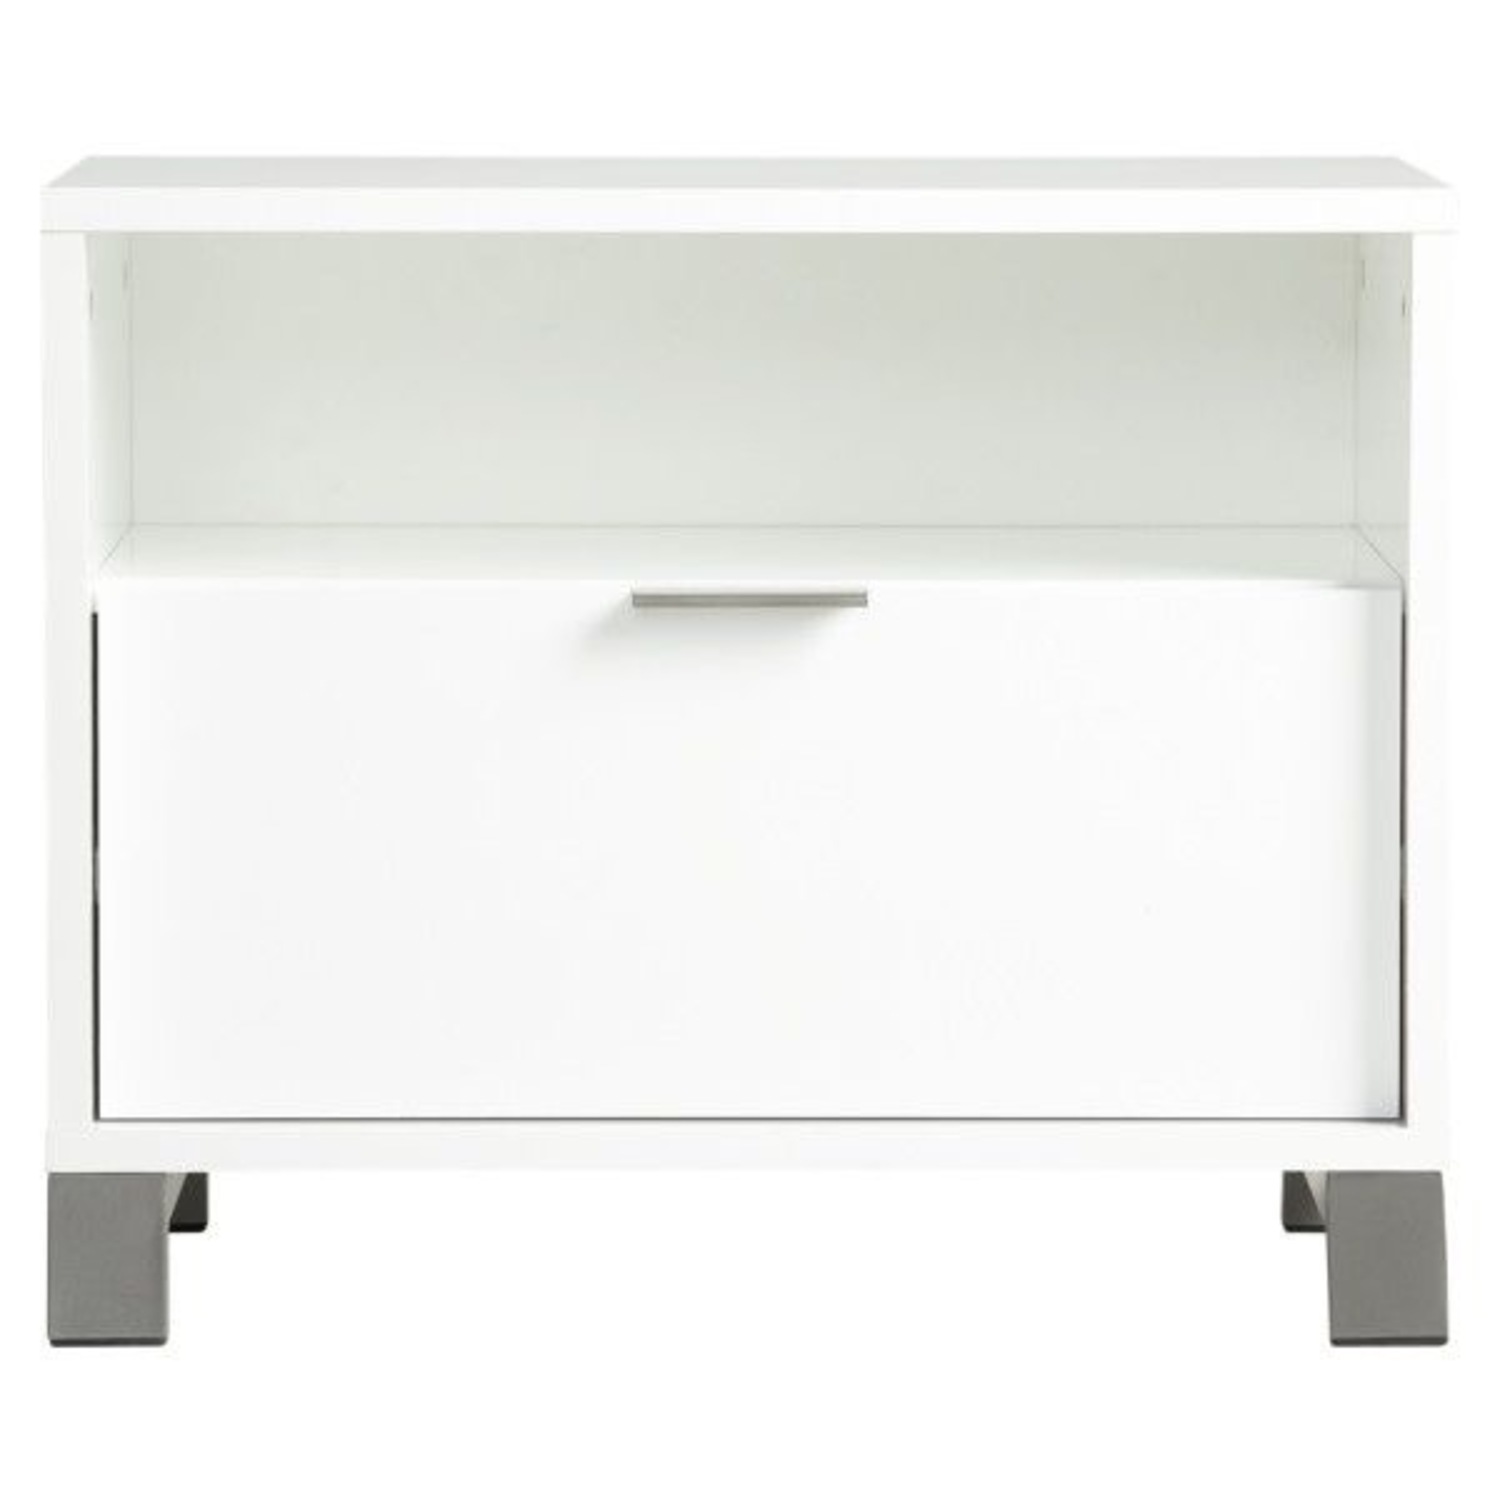 CB2 Matchbox Nightstand in White Lacquer - image-1